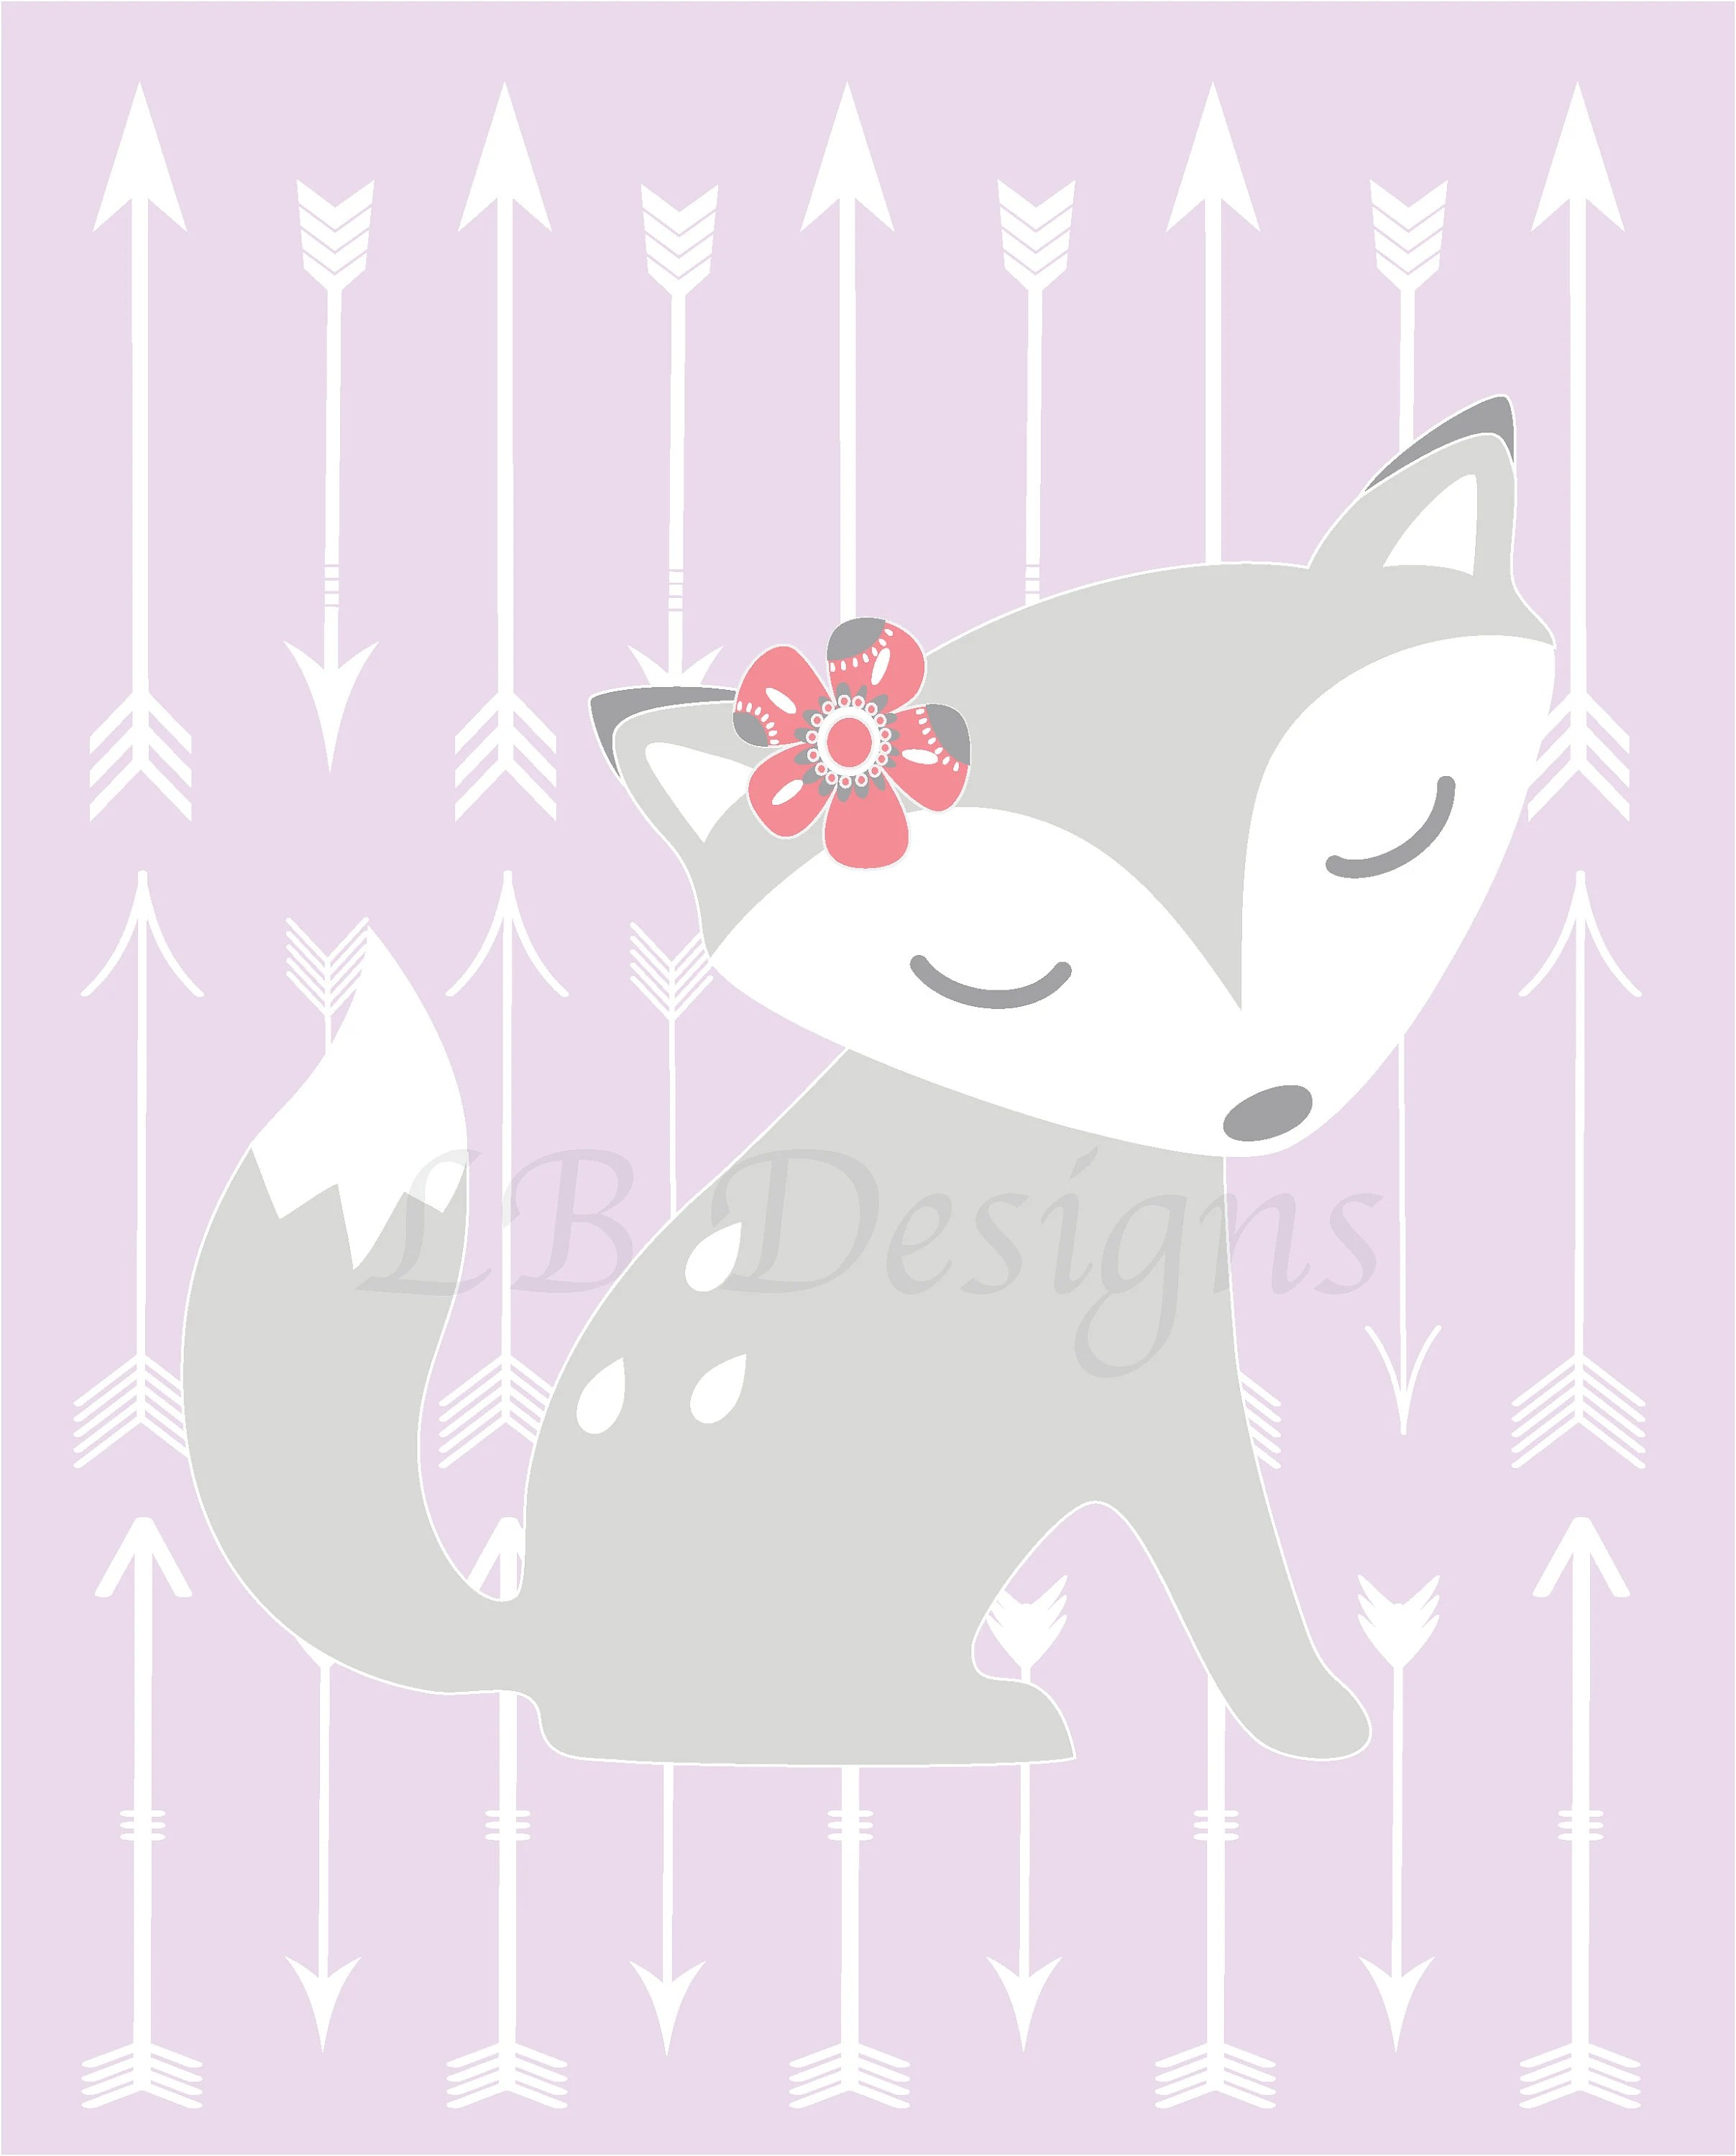 Nursery Prints Girl Baby Girl Fox Nursery Print Girl Woodland Nursery Decor Boho Nursery Art Purple And Gray Nursery